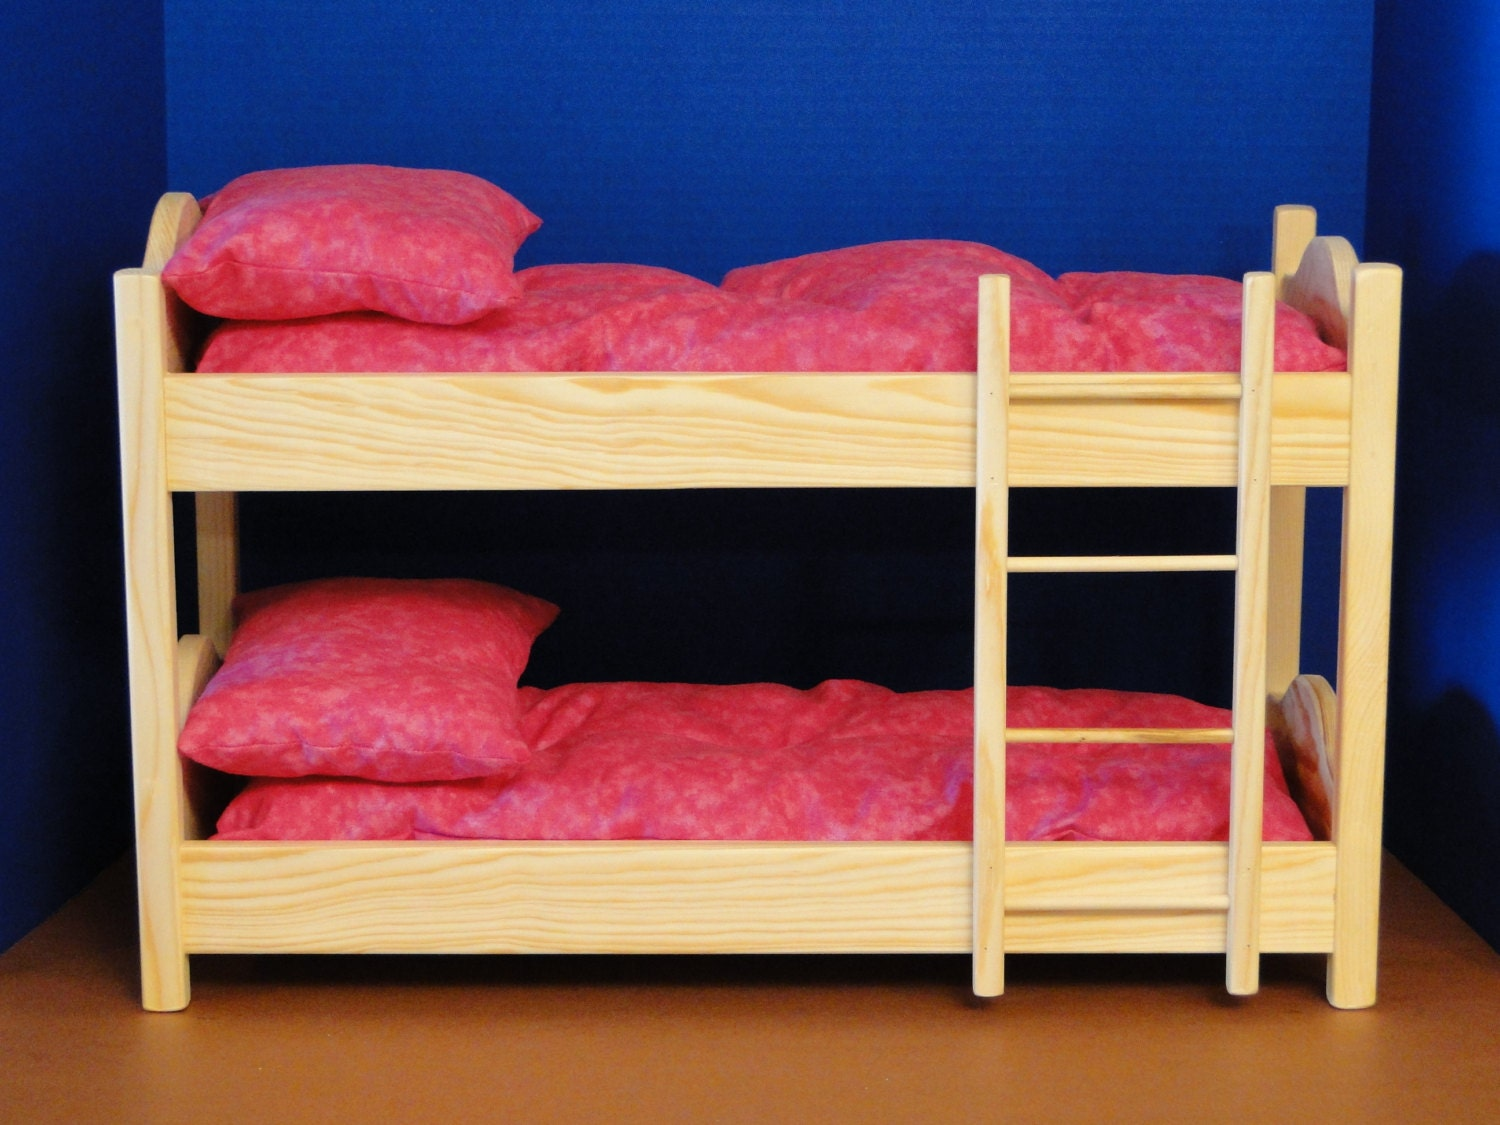 bunk bed with mattresses pillows for 18 inch dolls 097. Black Bedroom Furniture Sets. Home Design Ideas